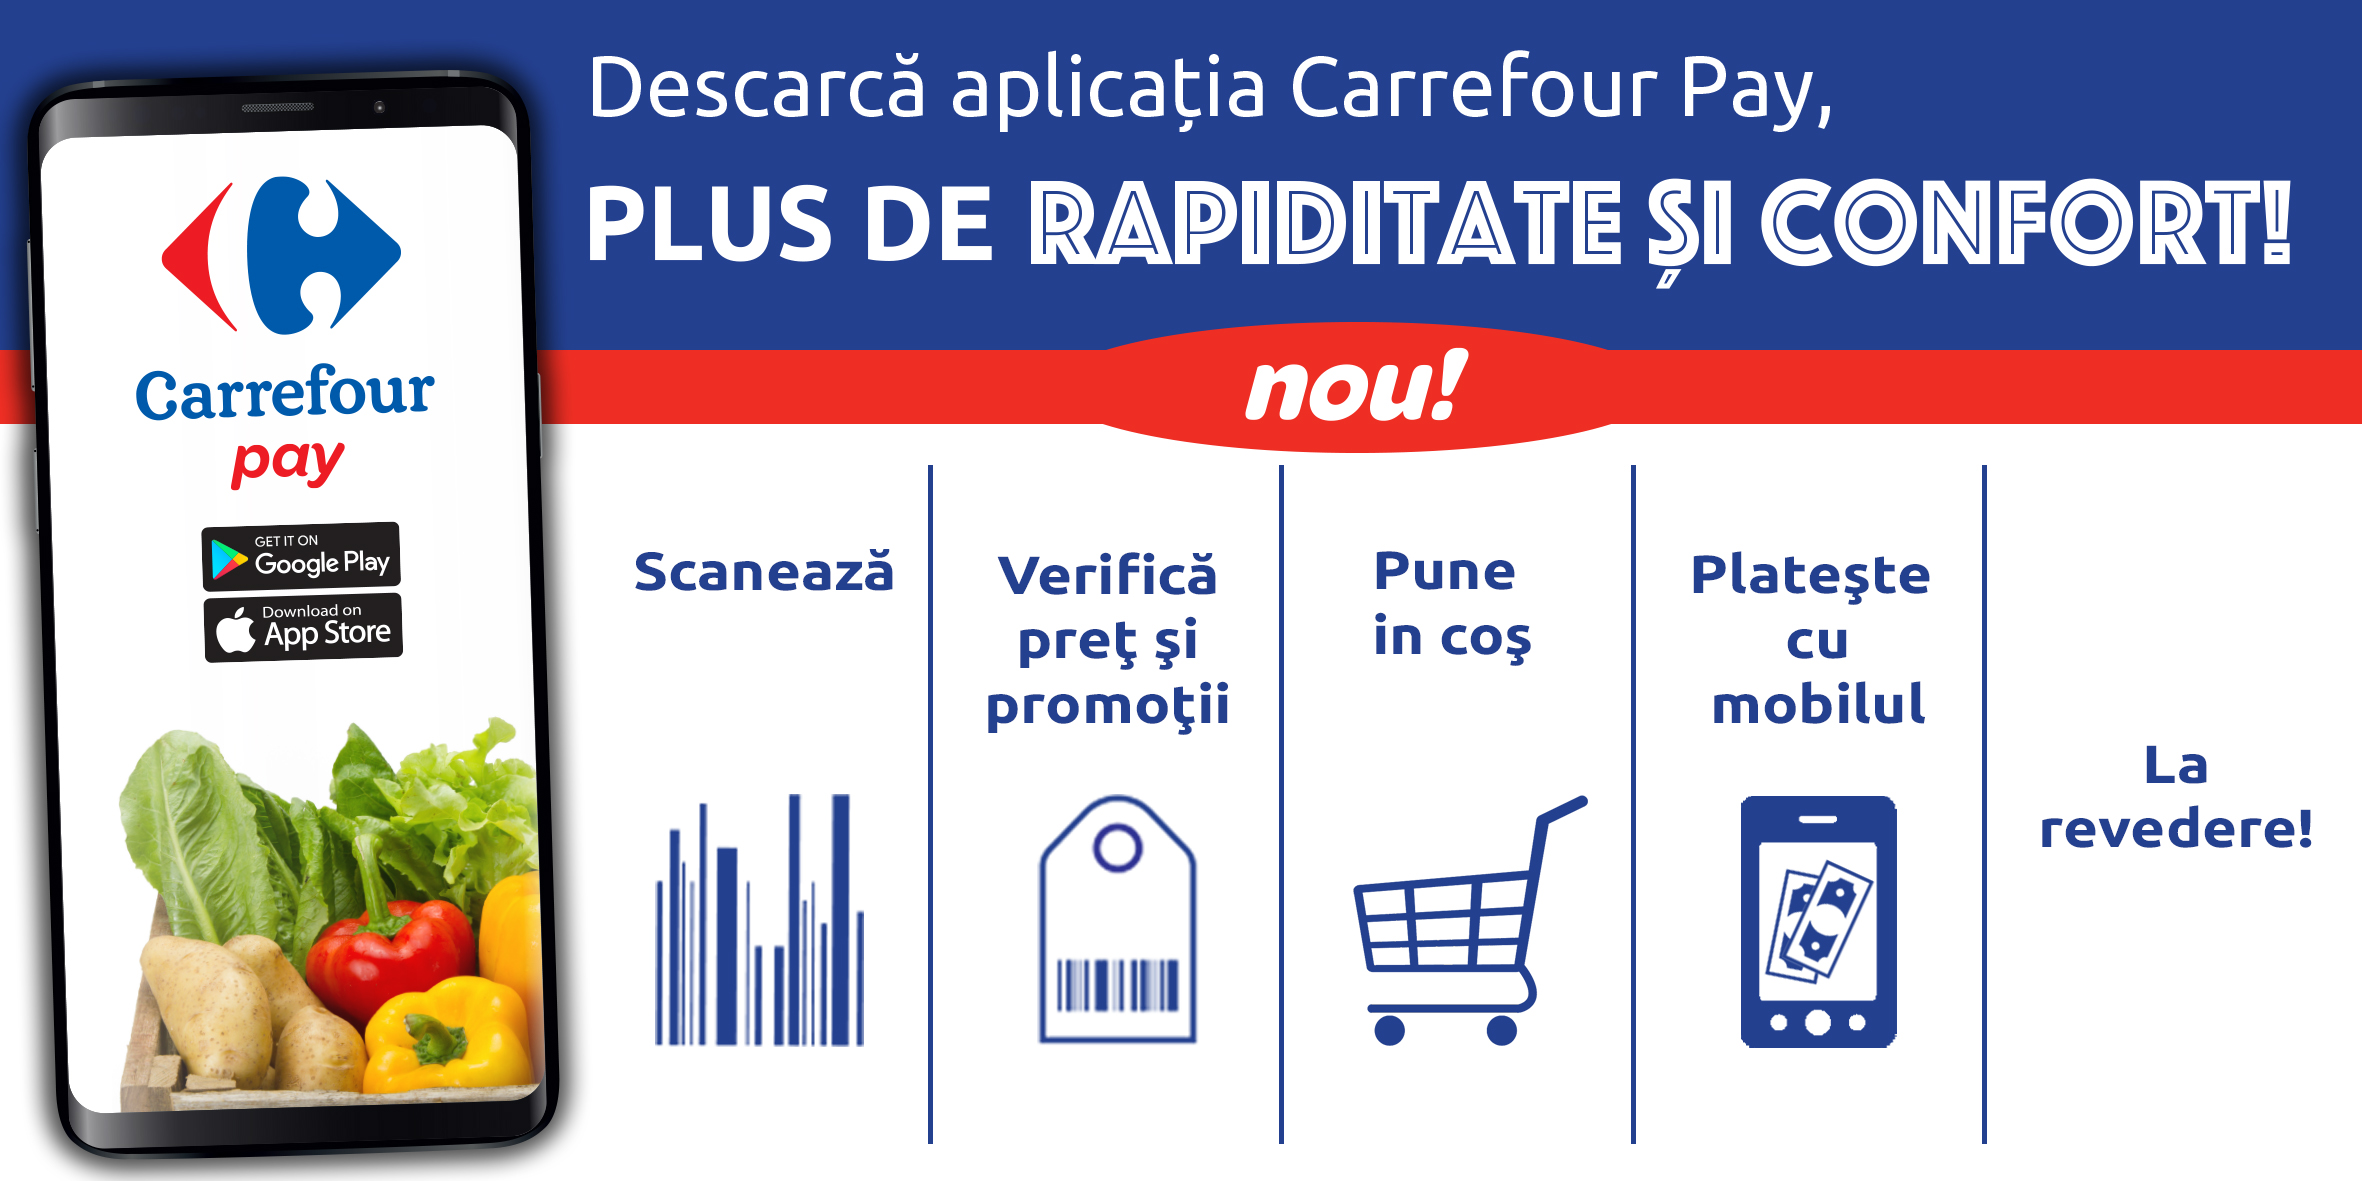 Descarca aplicatia Carrefour Pay, plus de rapiditate si confort!